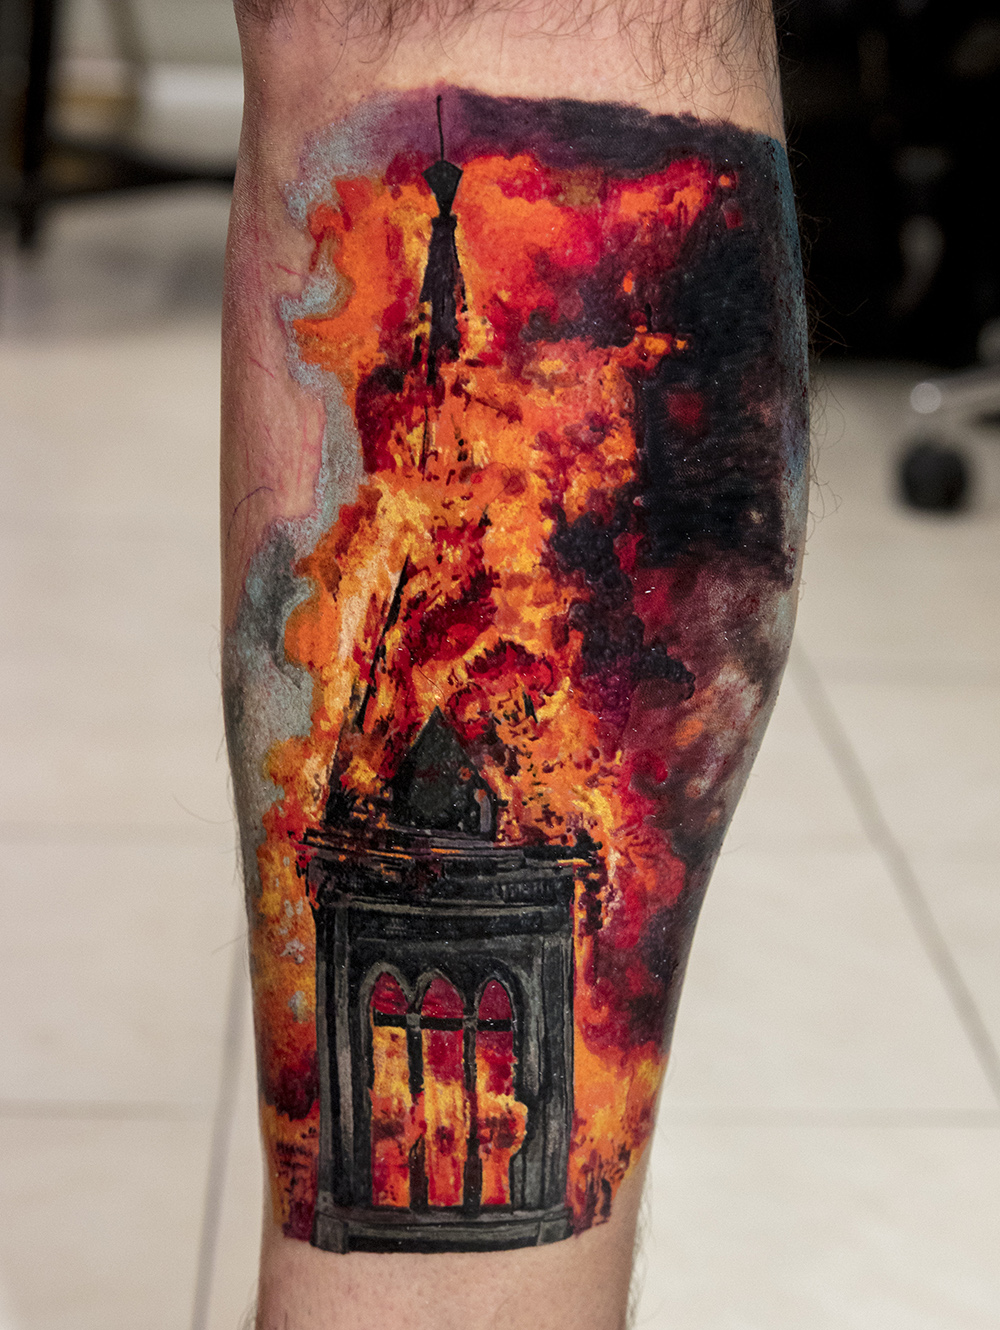 Building on fire tattoo by Mikhail Andersson